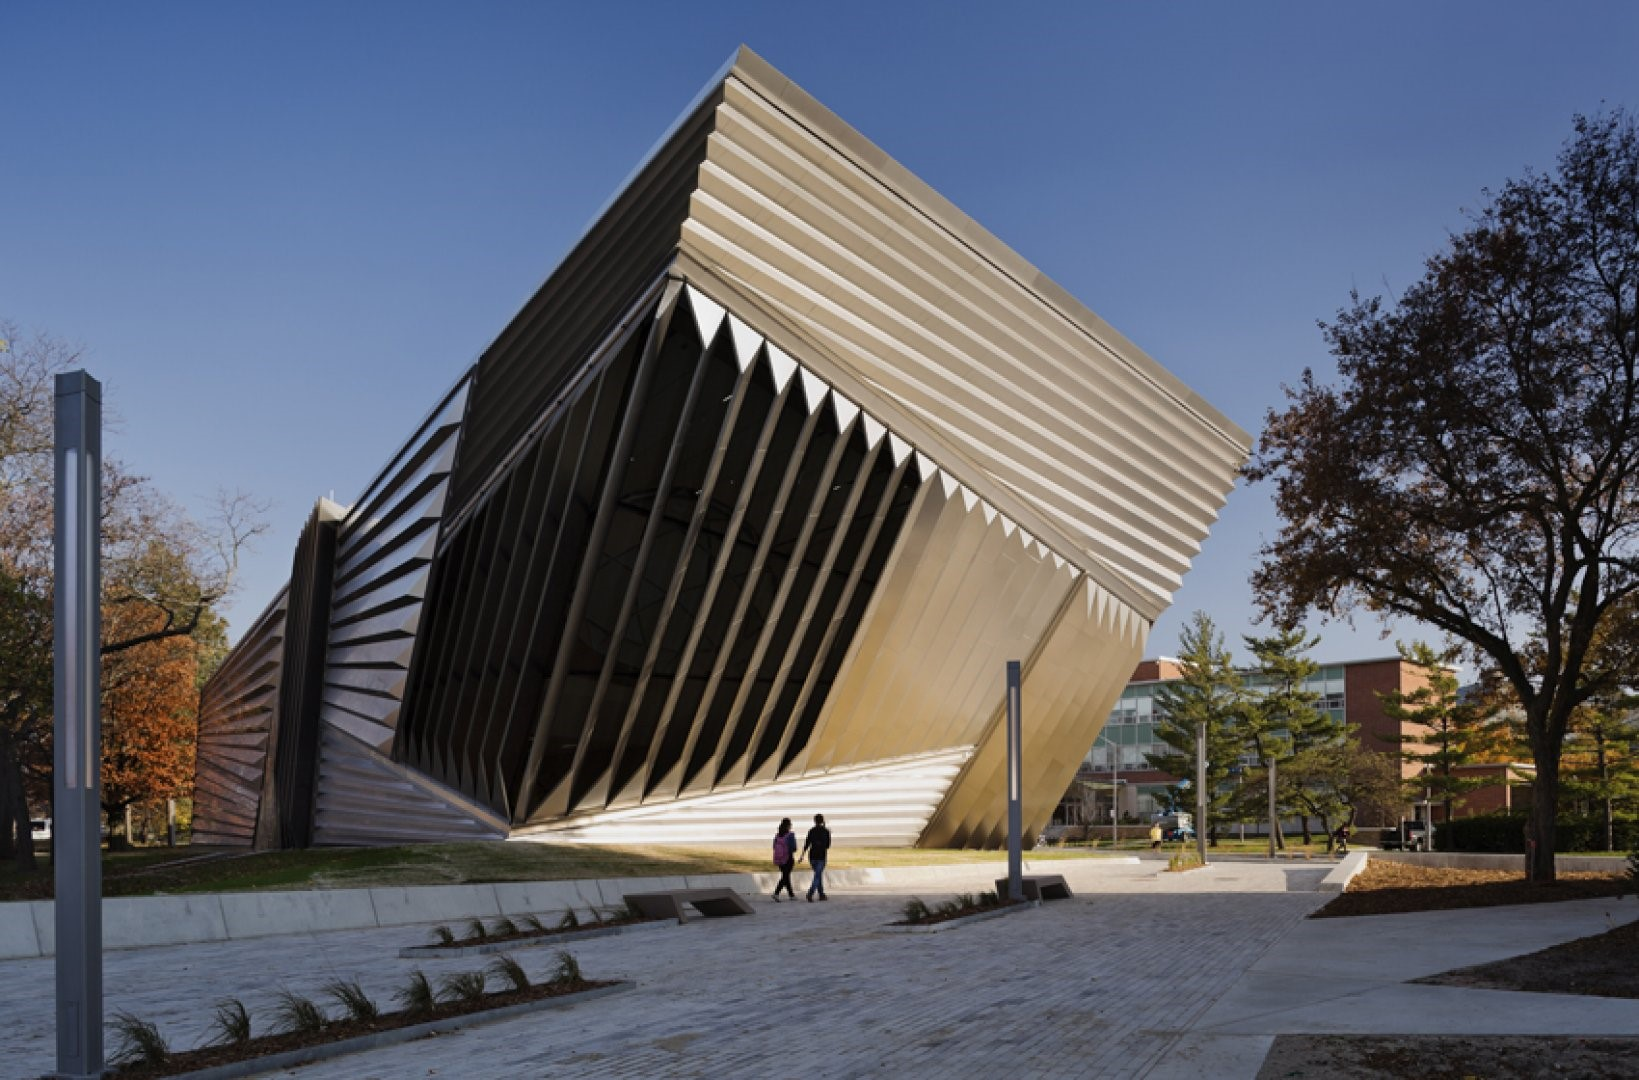 Eli & Edythe Broad Art Museum at Michigan State University, designed by Zaha Hadid